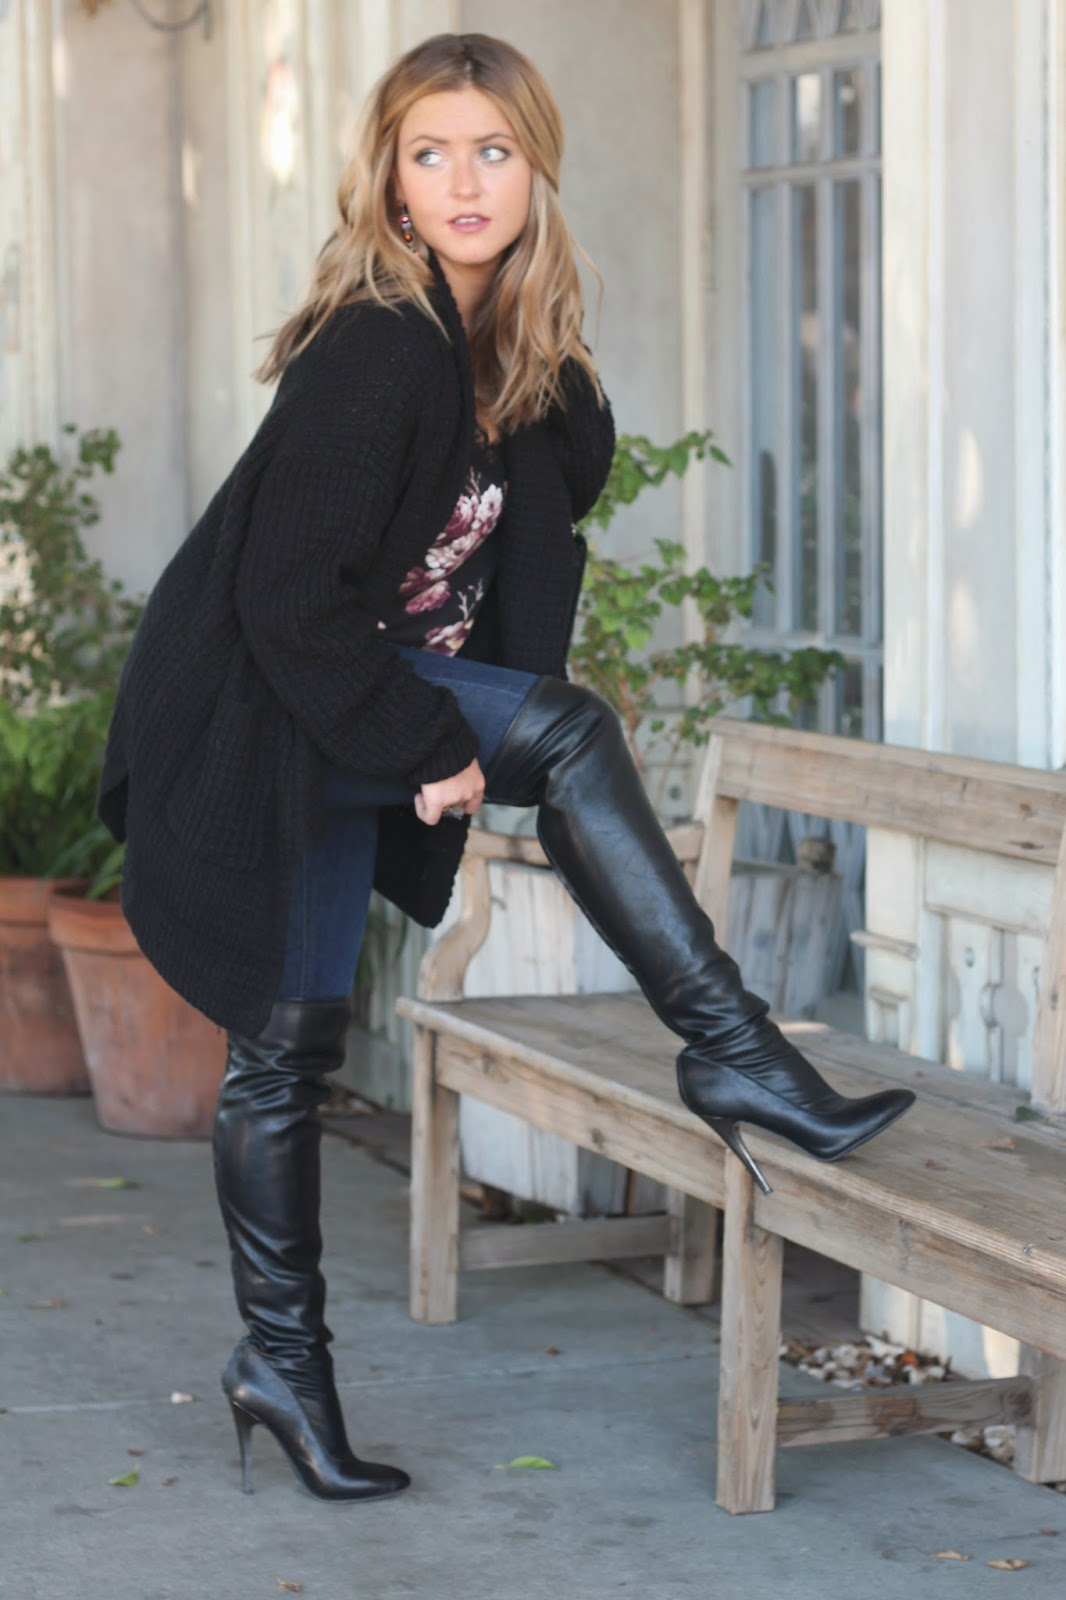 Women's Boots Score the perfect pair of women's boots at Famous Footwear! With favorite colors like brown, black, and grey and materials like leather and suede, .